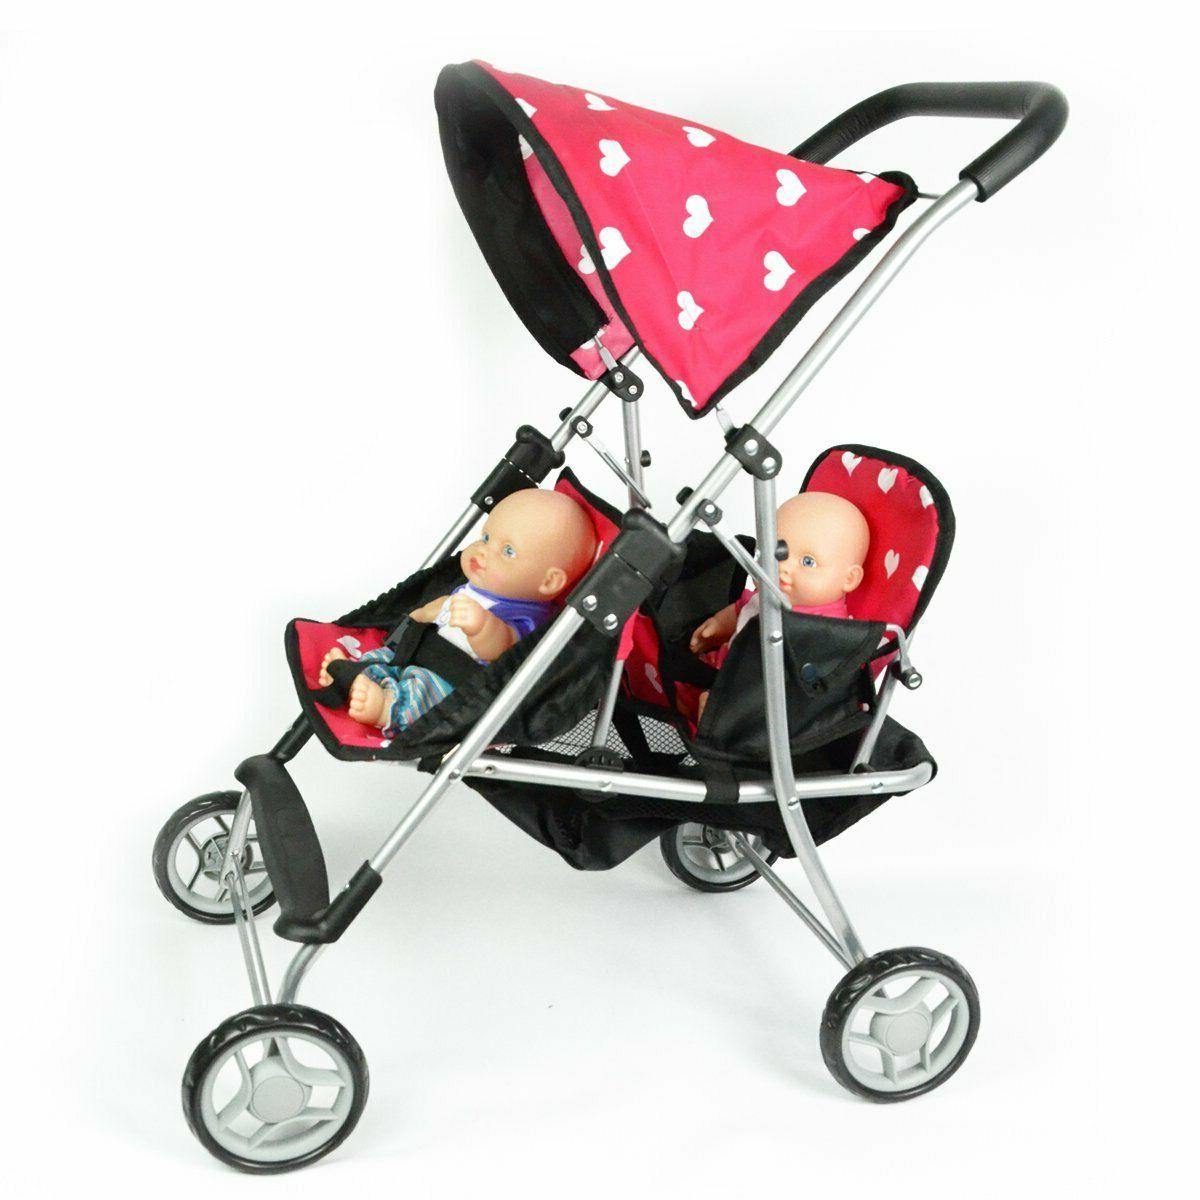 Besrey 360º Rotation Strollers Shock Absorption Infant Push